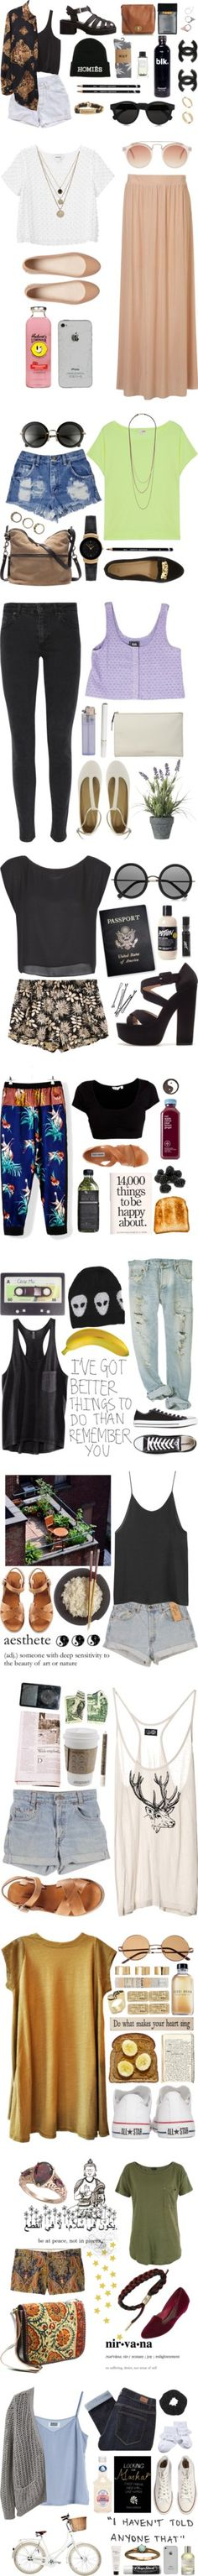 """Favorites"" by mackenziemiller1234 ❤ liked on Polyvore"